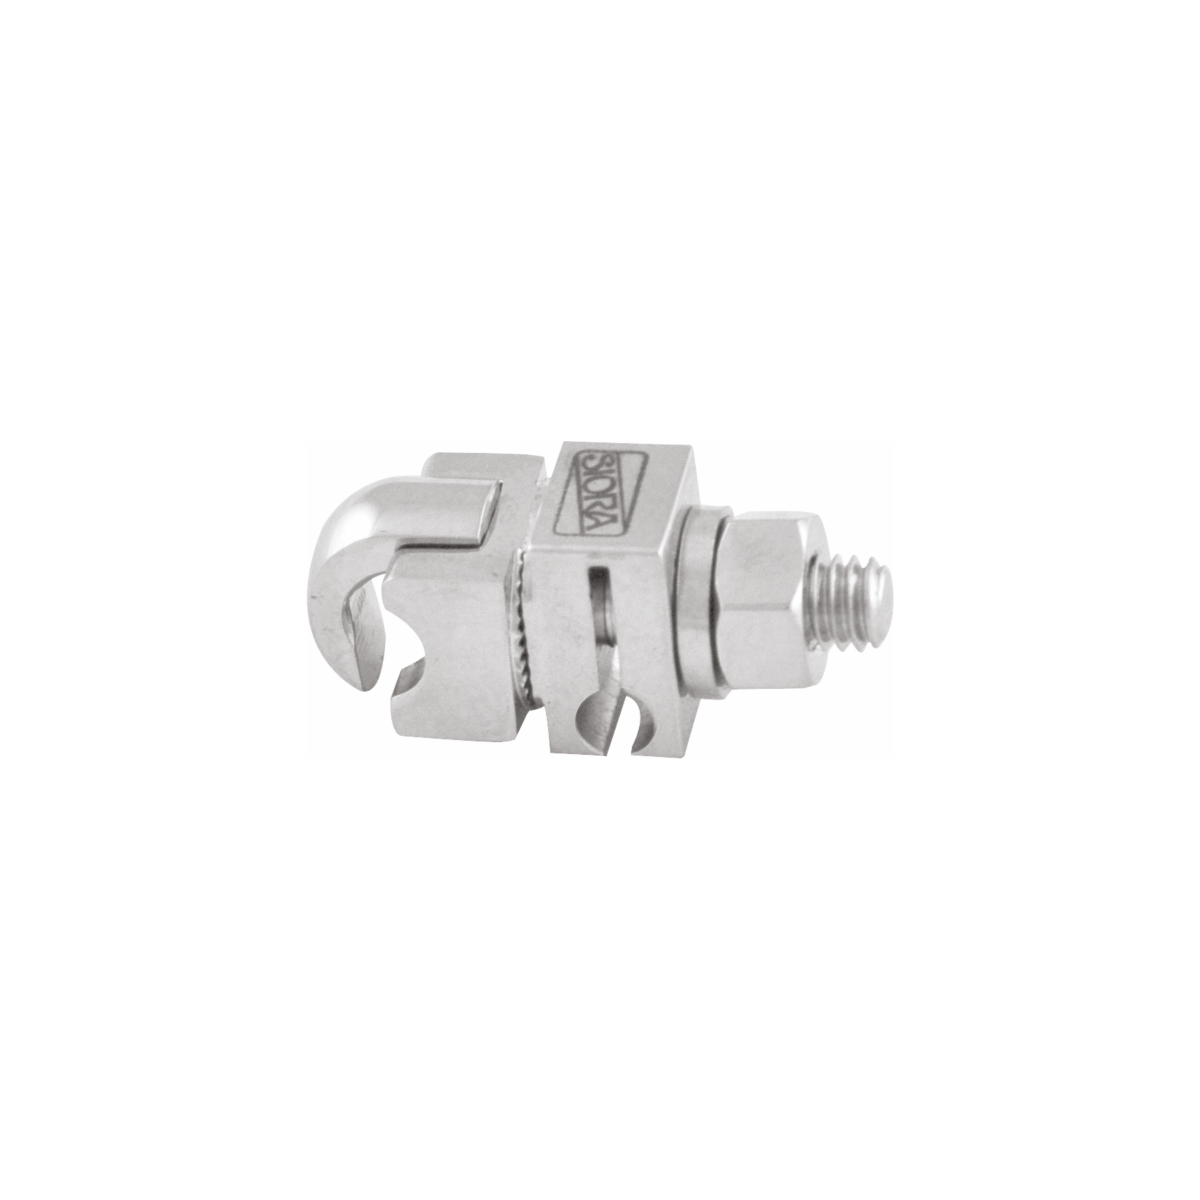 Open Small Connection Clamp 4.0mm x 4.0mm